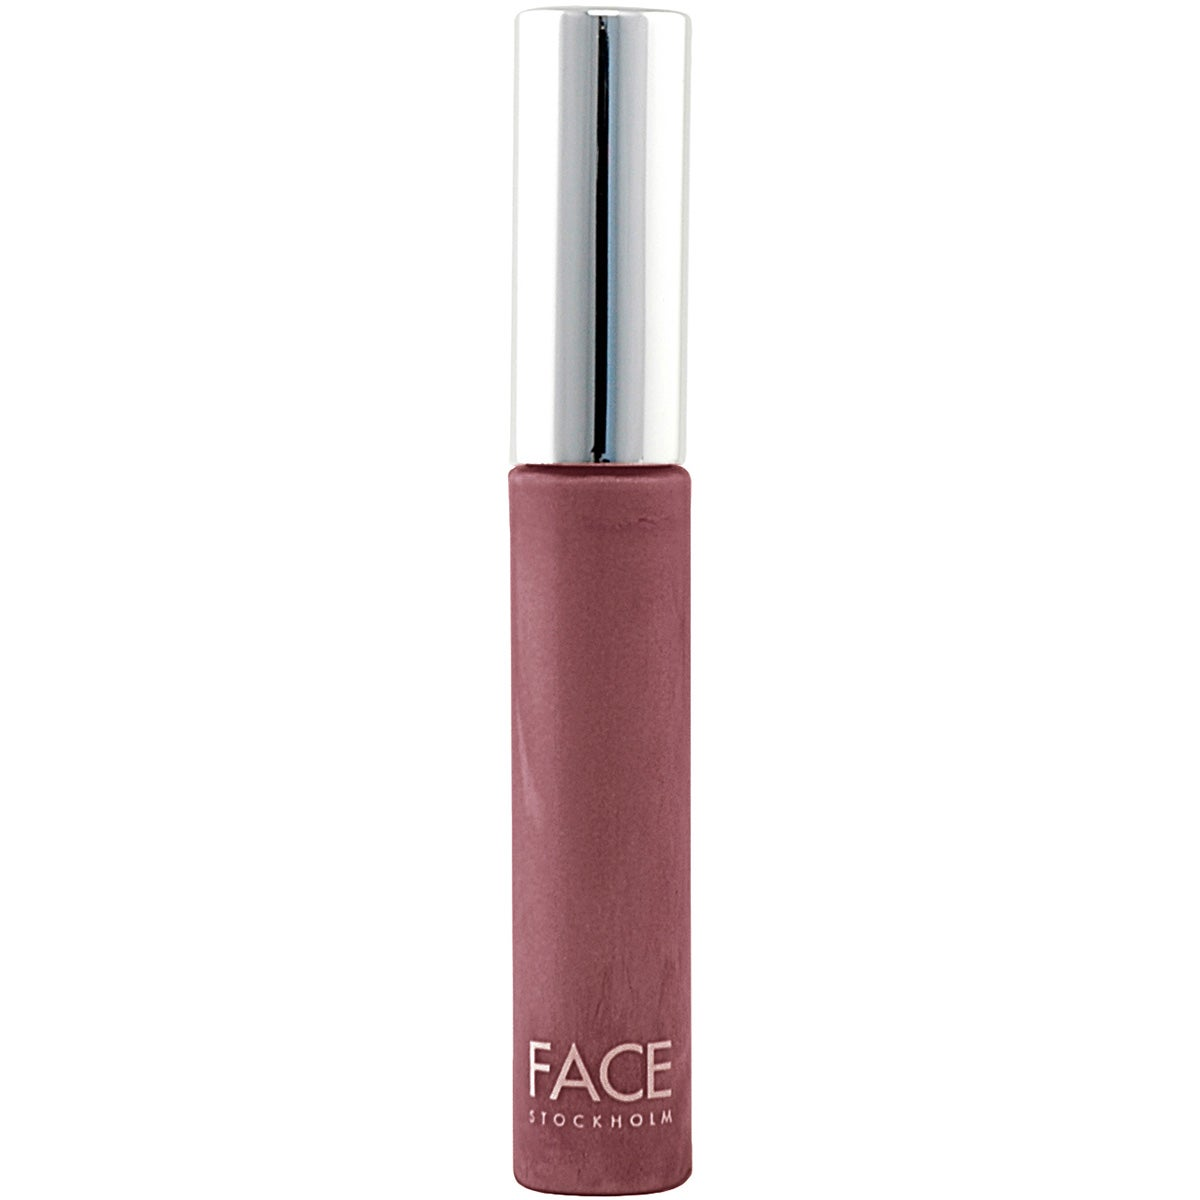 FACE Stockholm Lipgloss 8 g FACE Stockholm Läppglans